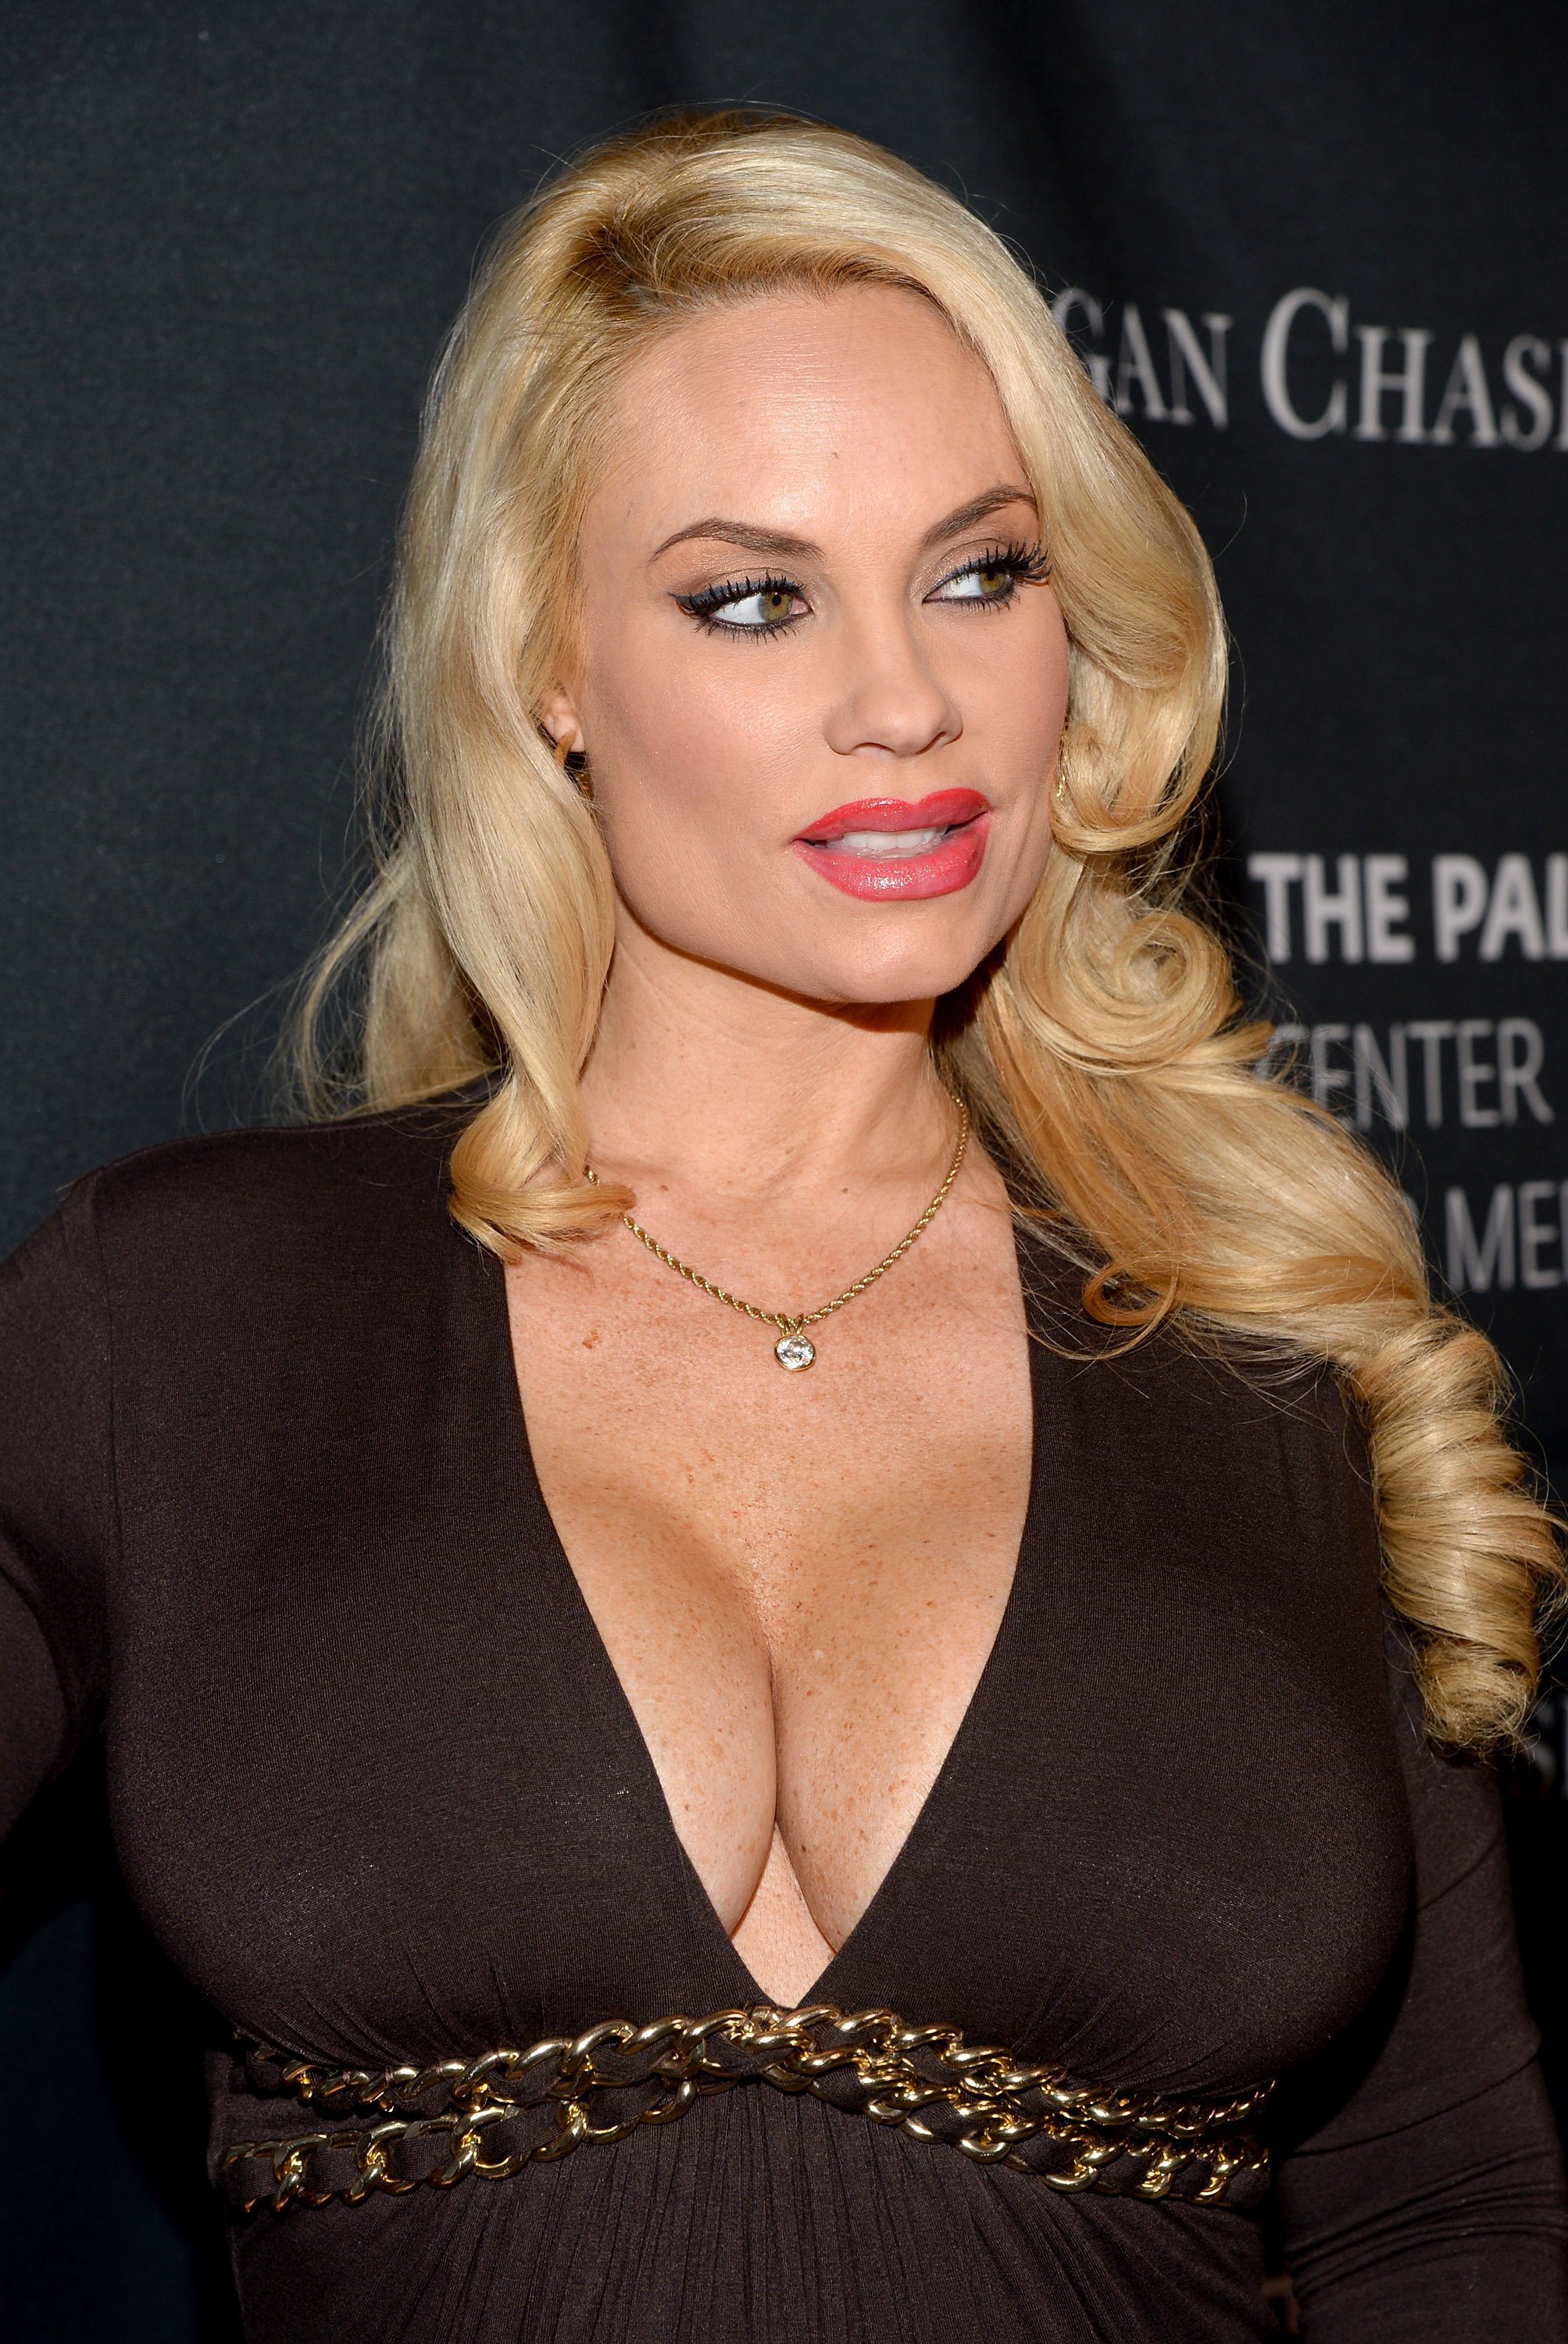 Coco Austin at the Paley Center for Media's Hollywood Tribute to African-American Achievements in Television, 2015 in Los Angeles, California   Source: Getty Images